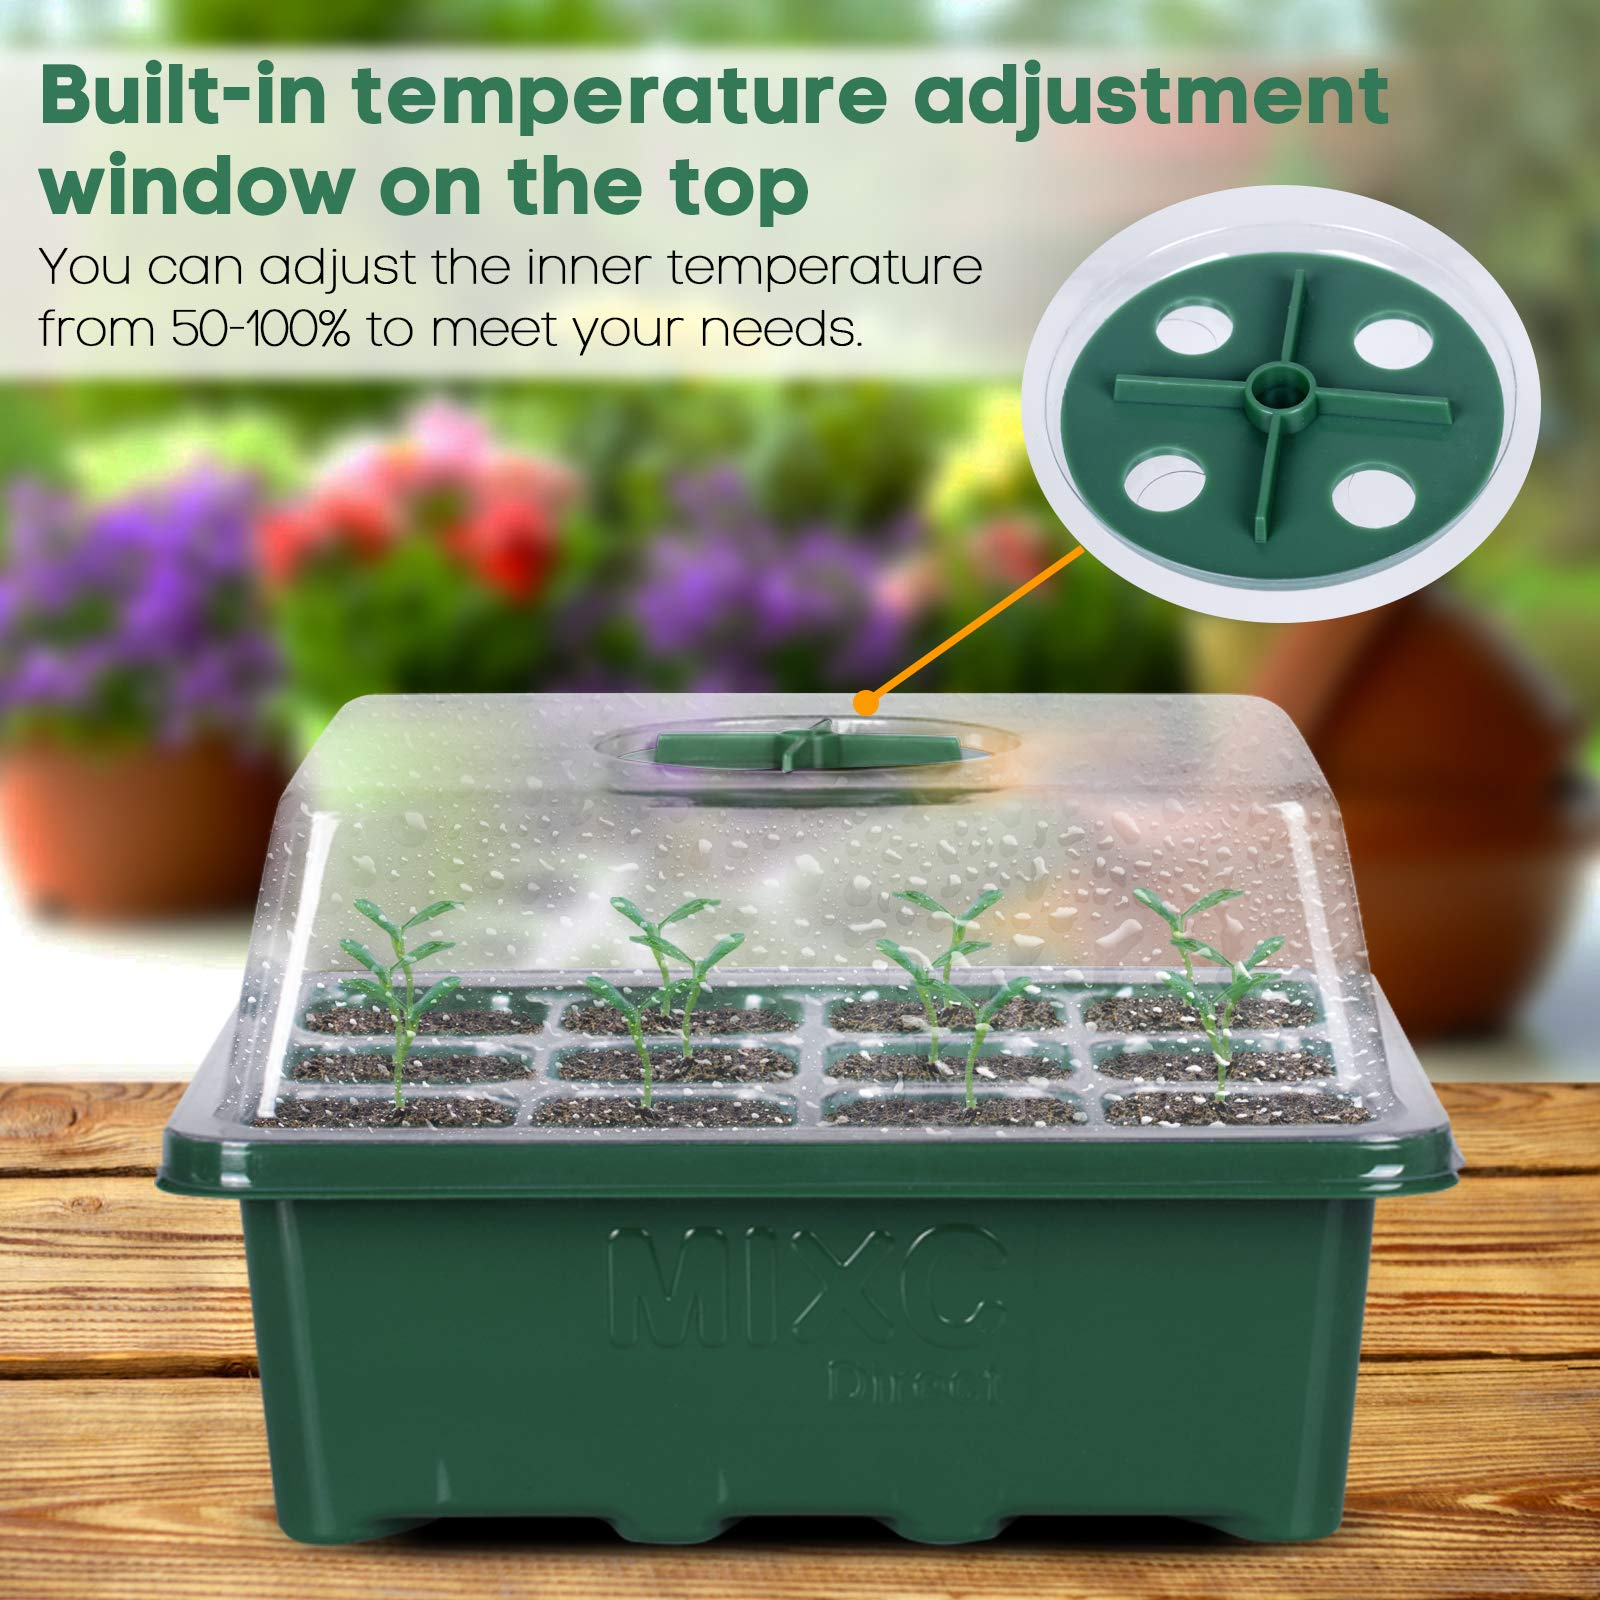 10-Pack Seed Trays Seedling Starter Tray, MIXC Humidity Adjustable Plant Germination Kit with Dome and Base Greenhouse Grow Trays Mini Propagator for Seeds Growing Starting (12 Cells per Tray)